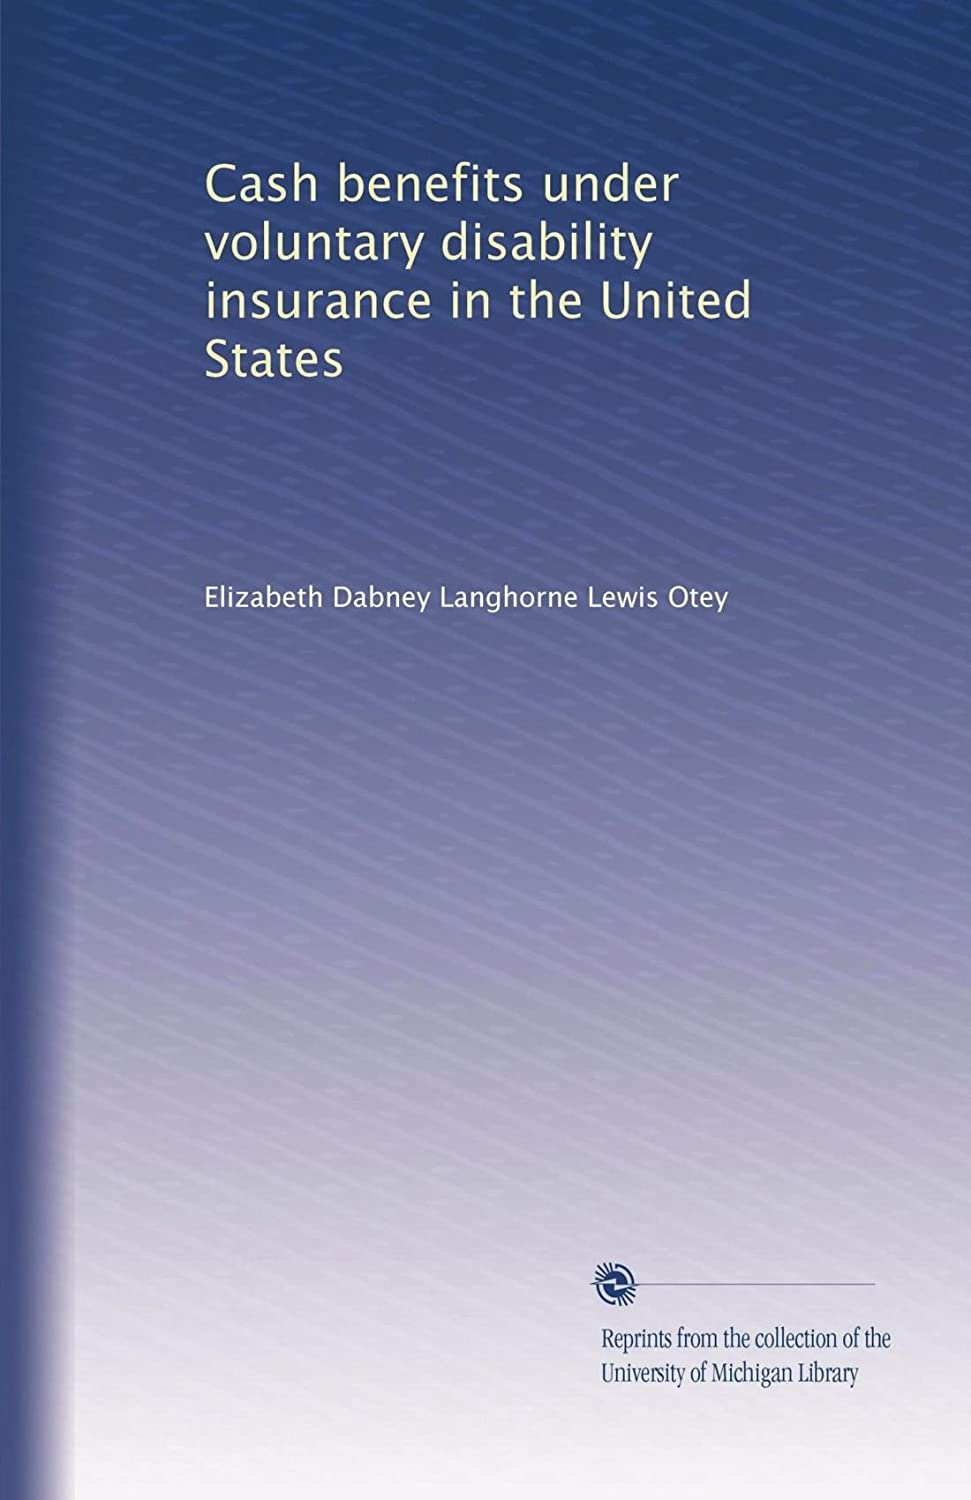 Cash benefits under voluntary disability insurance in the United States Elizabeth Dabney Langhorne Lewis Otey